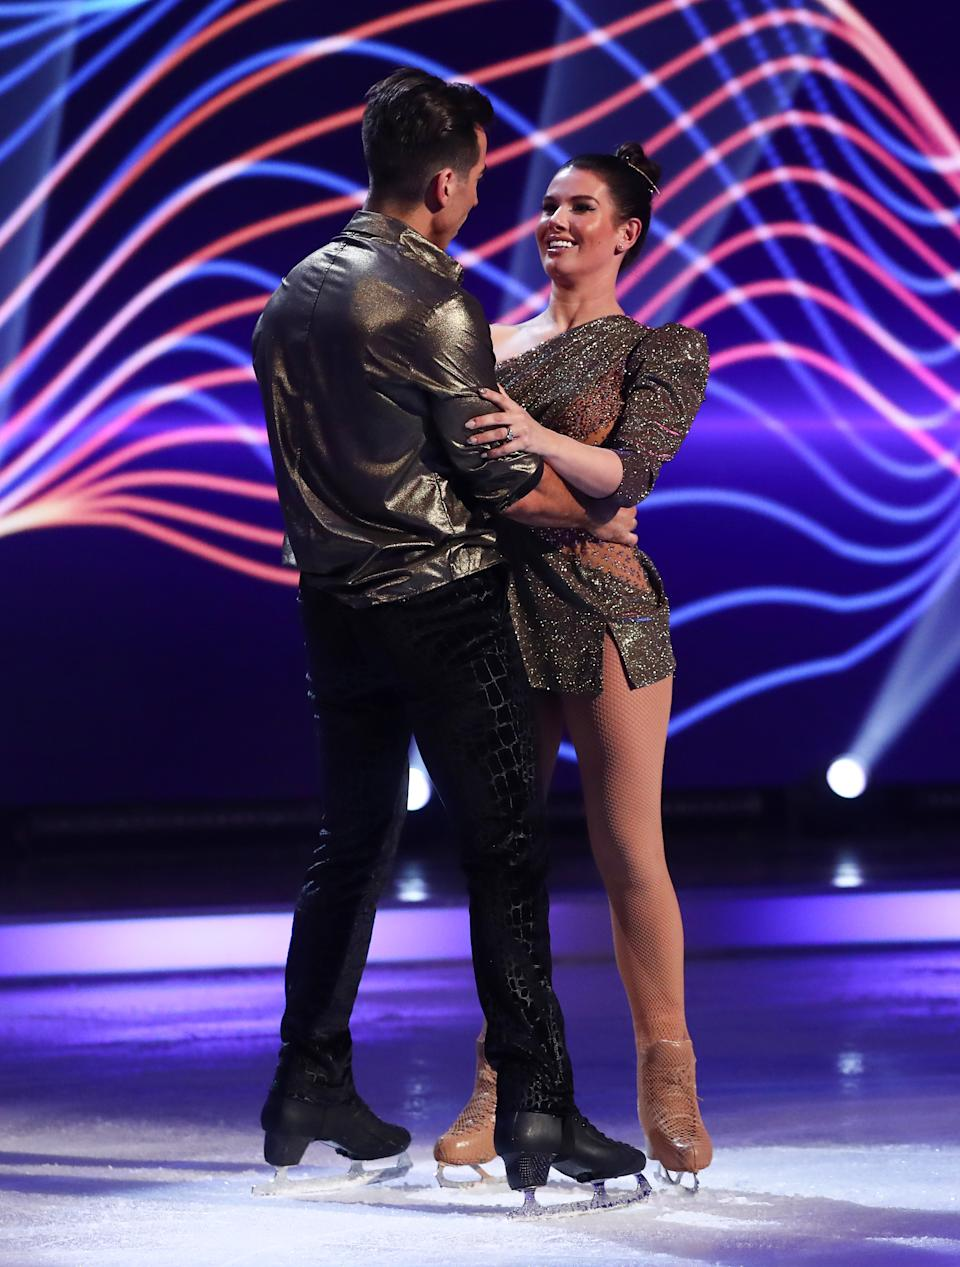 Editorial use only Mandatory Credit: Photo by Matt Frost/ITV/Shutterstock (11777383ht) Rebekah Vardy and Andy Buchanan during the skate-off 'Dancing On Ice' TV show, Series 13, Episode 6, Hertfordshire, UK - 28 Feb 2021